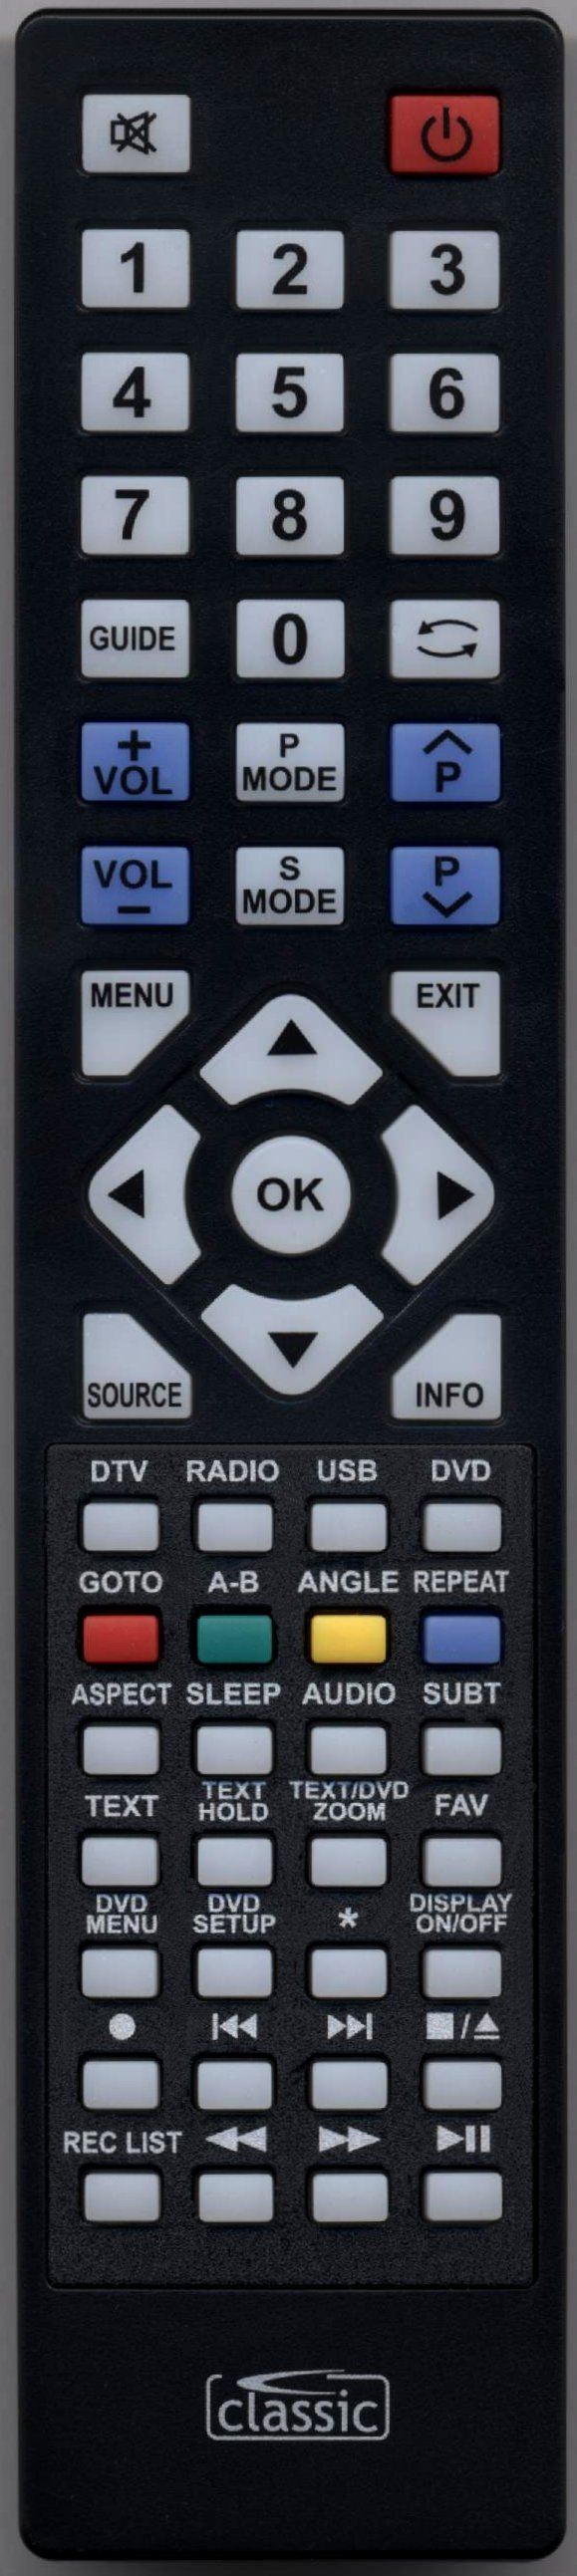 BLAUPUNKT 42/131J-GB-1B-F3HCU-UK Remote Control Alternative